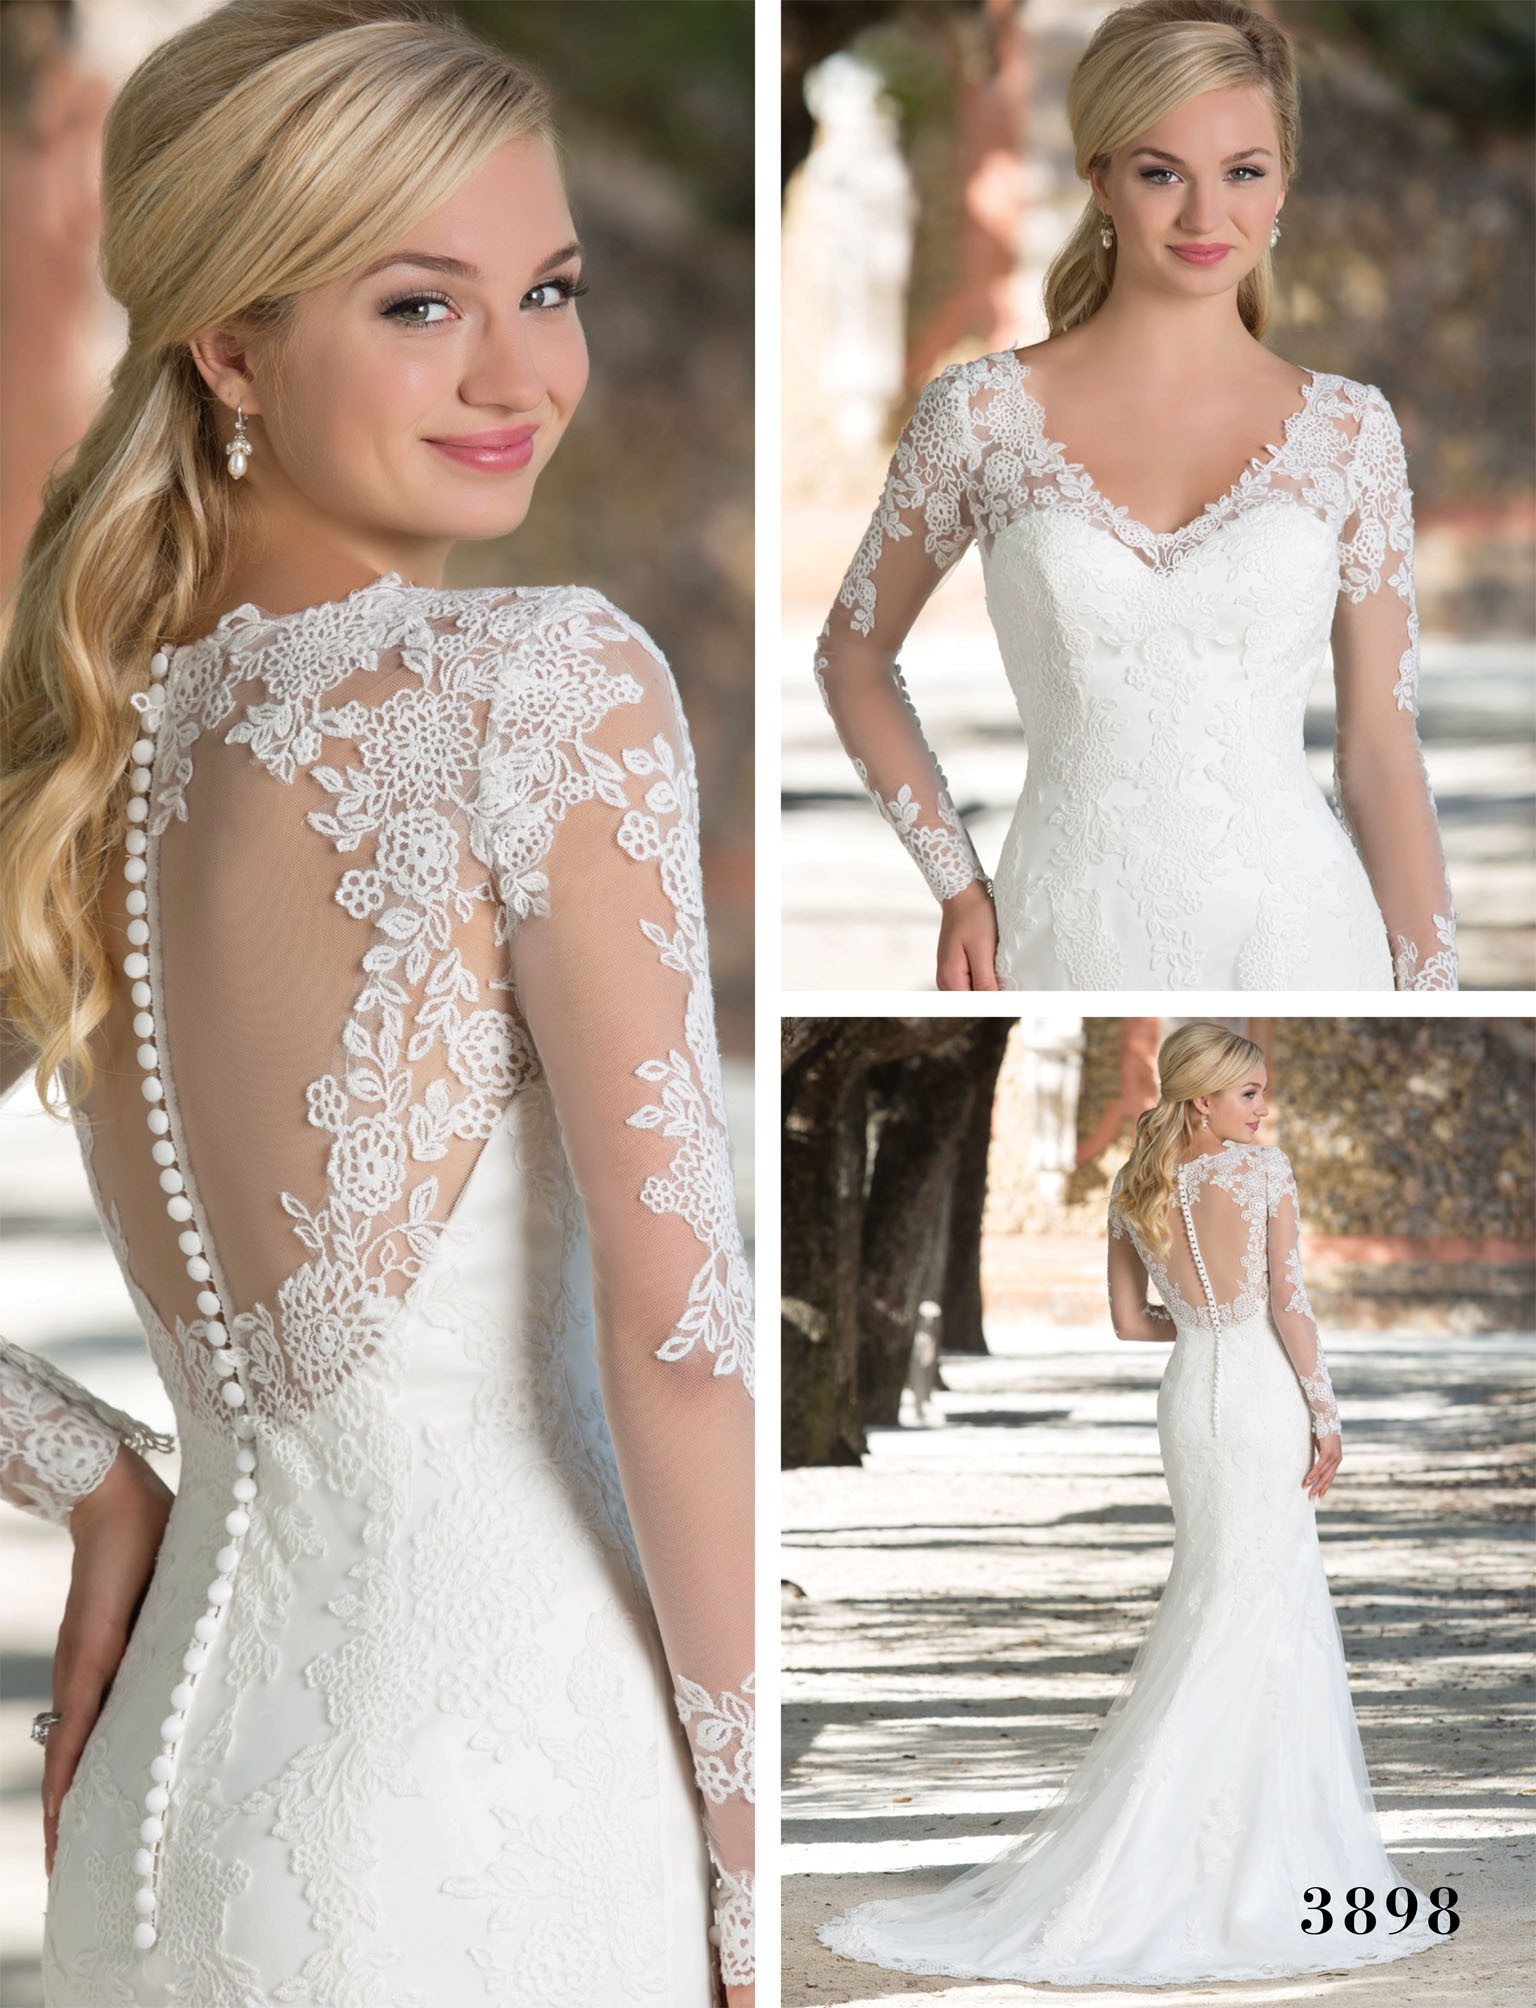 Twilight Wedding Dress – Get the Look - EverAfterGuide